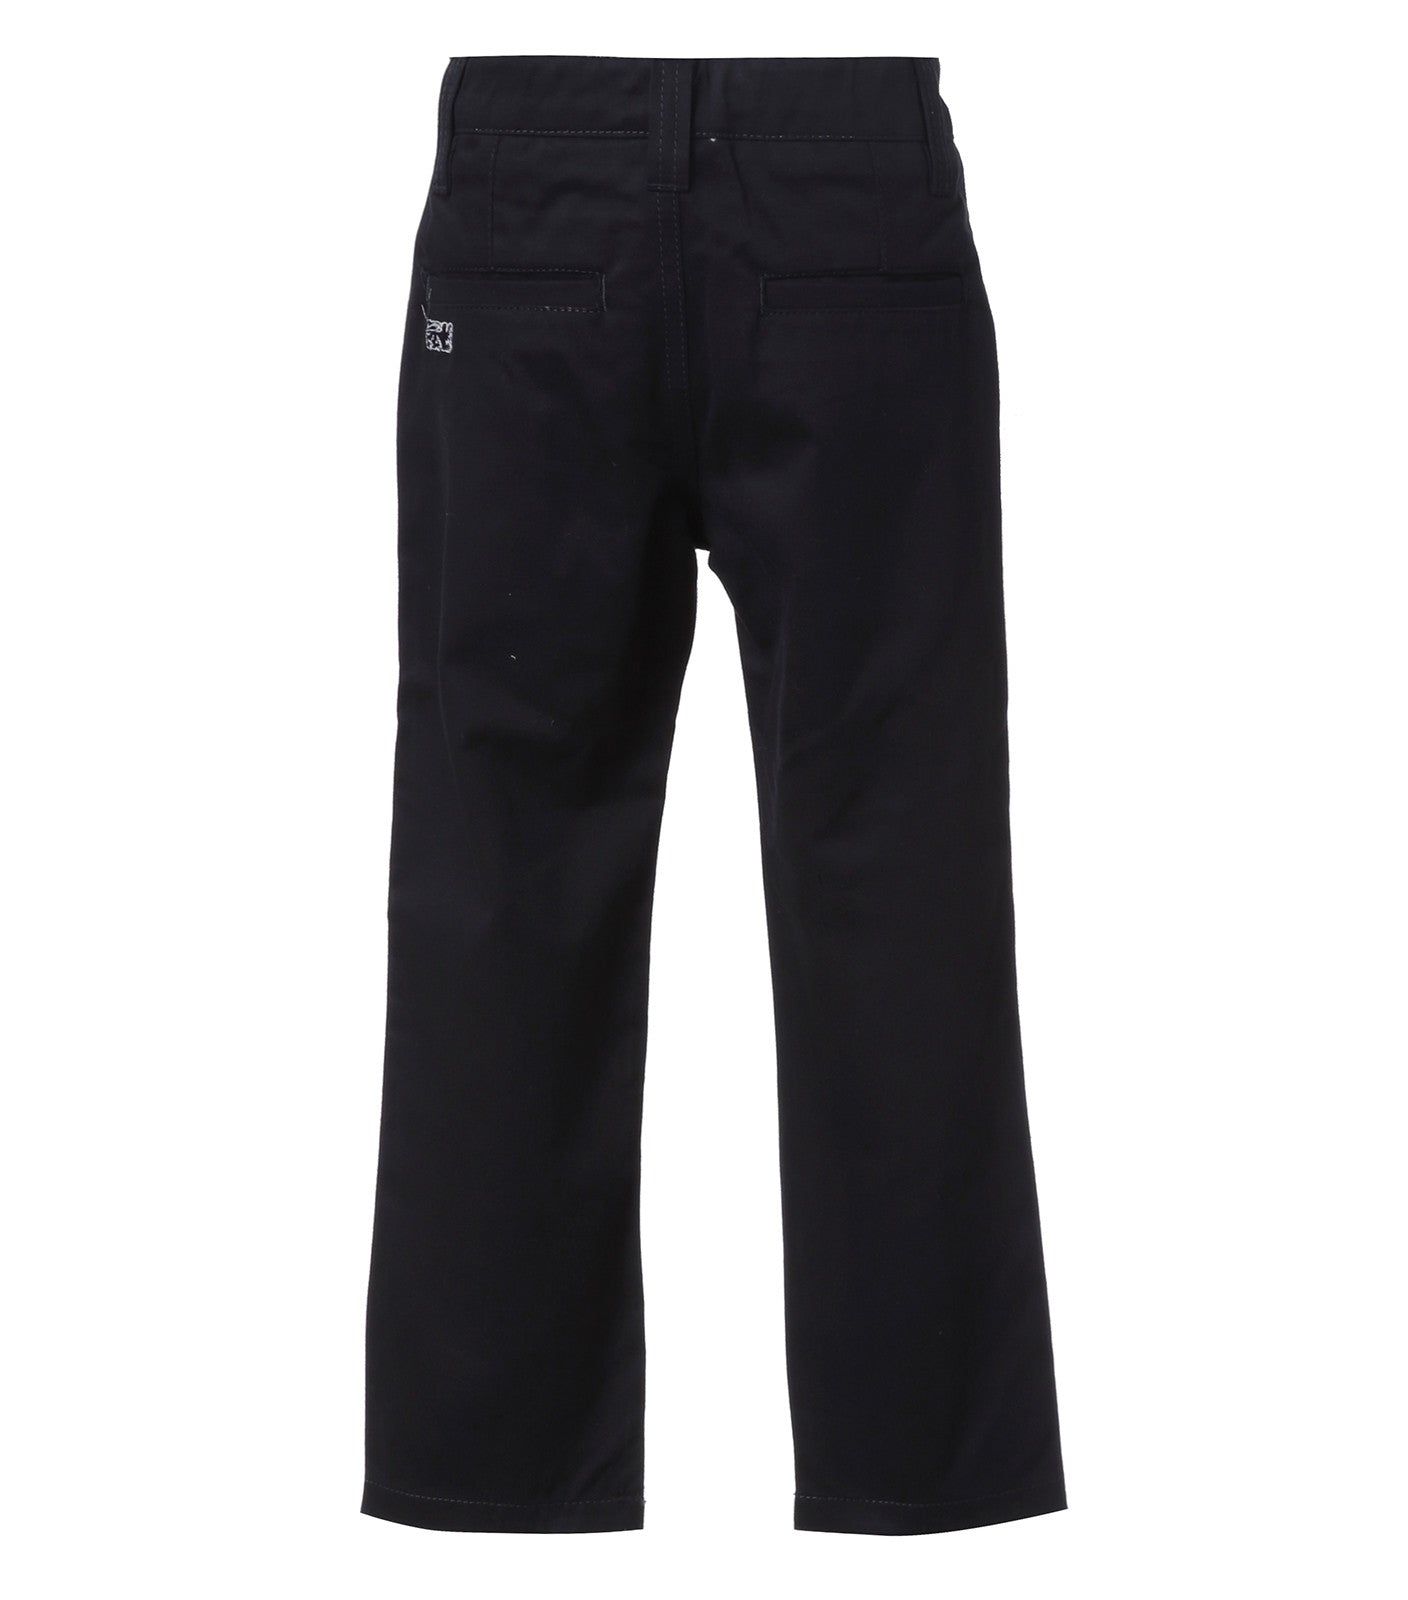 Dark Navy Blue Pants for boys